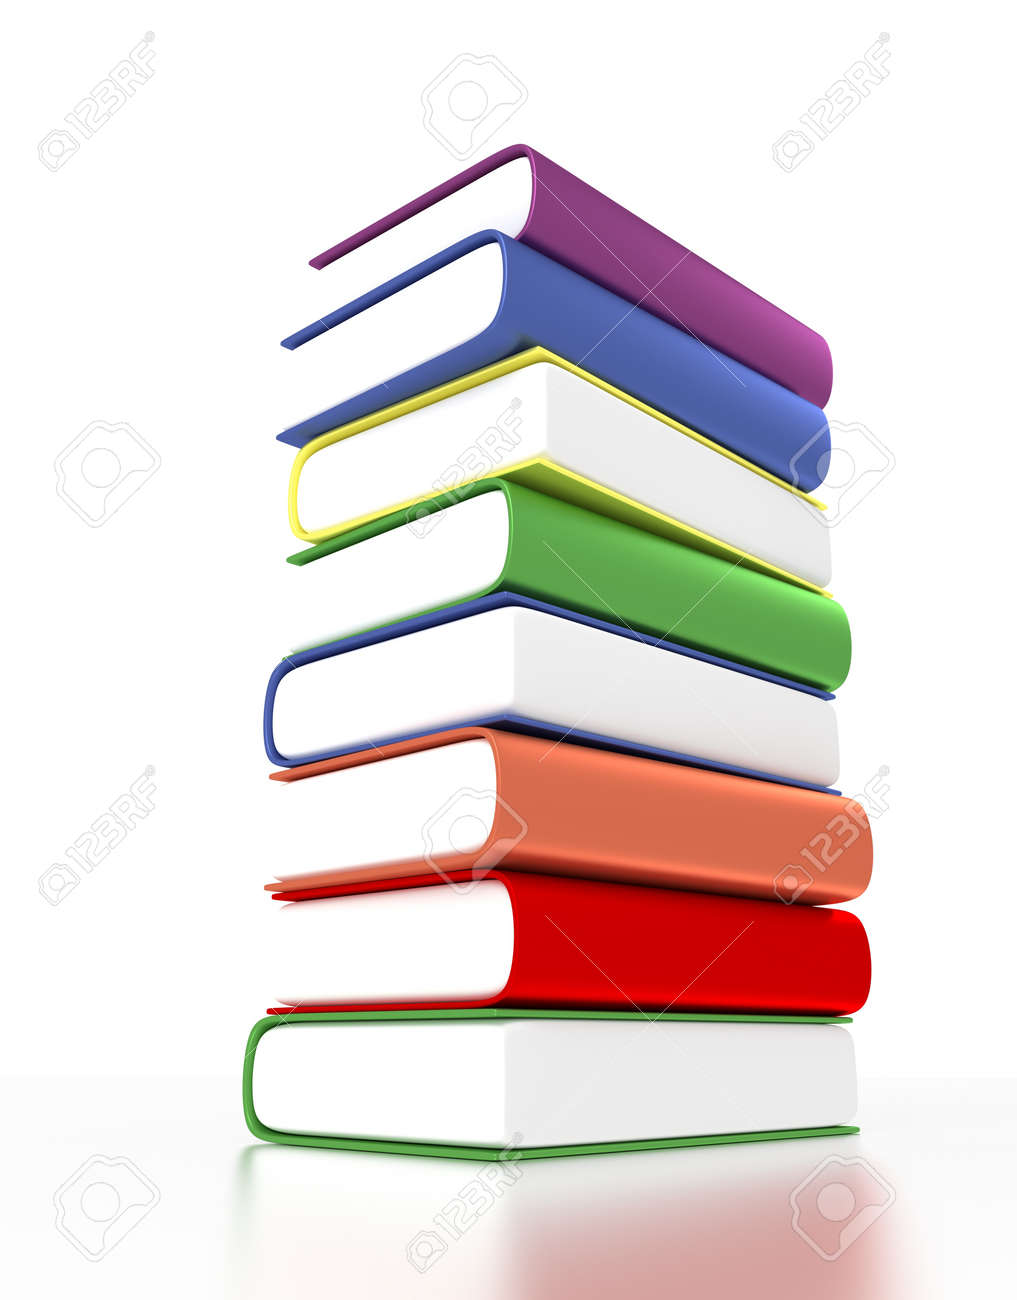 3d Pile Of Books With Different Colors Stock Photo, Picture And ...